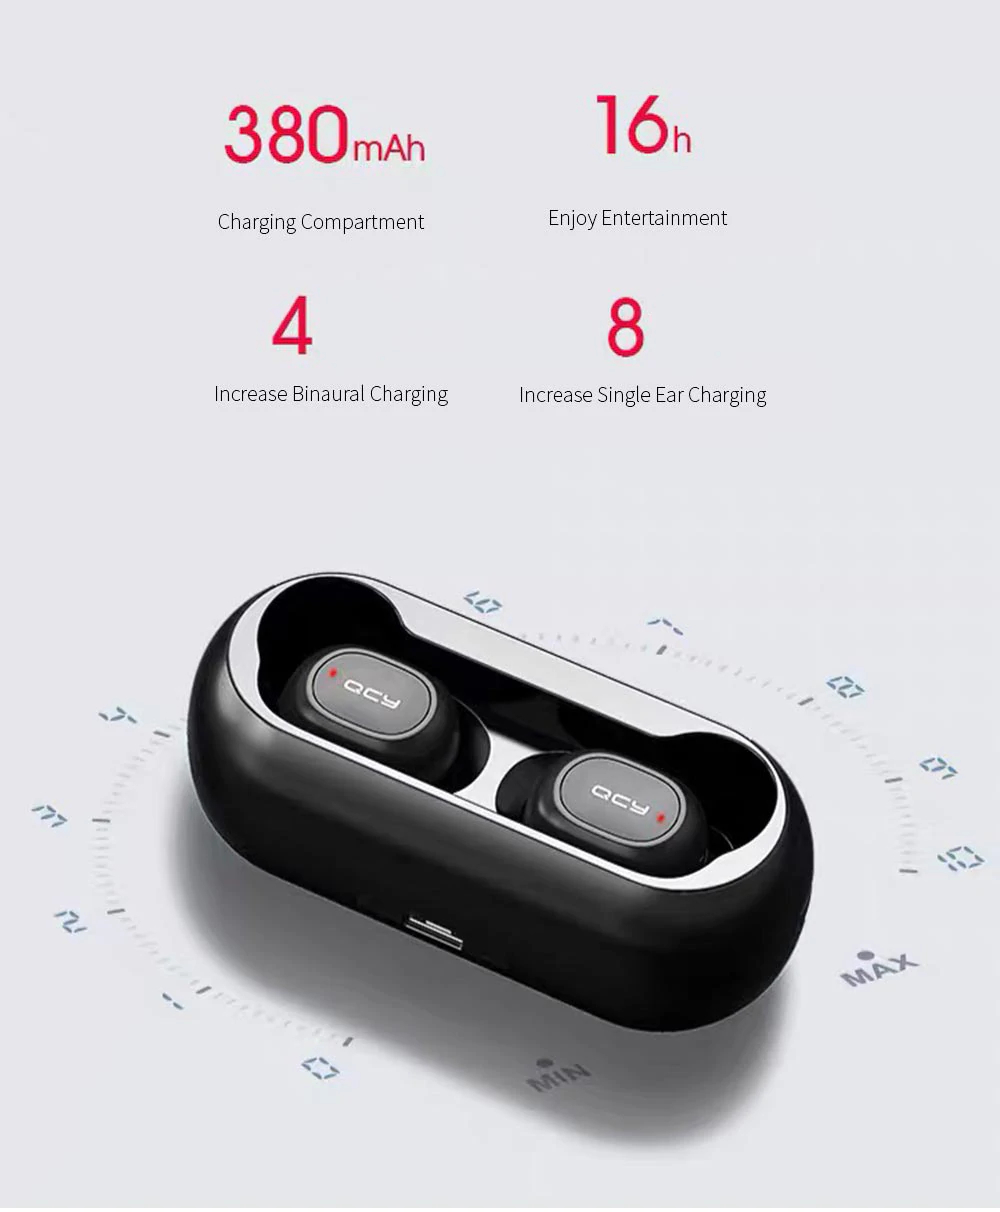 [bluetooth 5.0] QCY T1C TWS True Wireless Earphone HiFi Stereo Dual Mic Headphone with Charging Box from xiaomi Eco-System